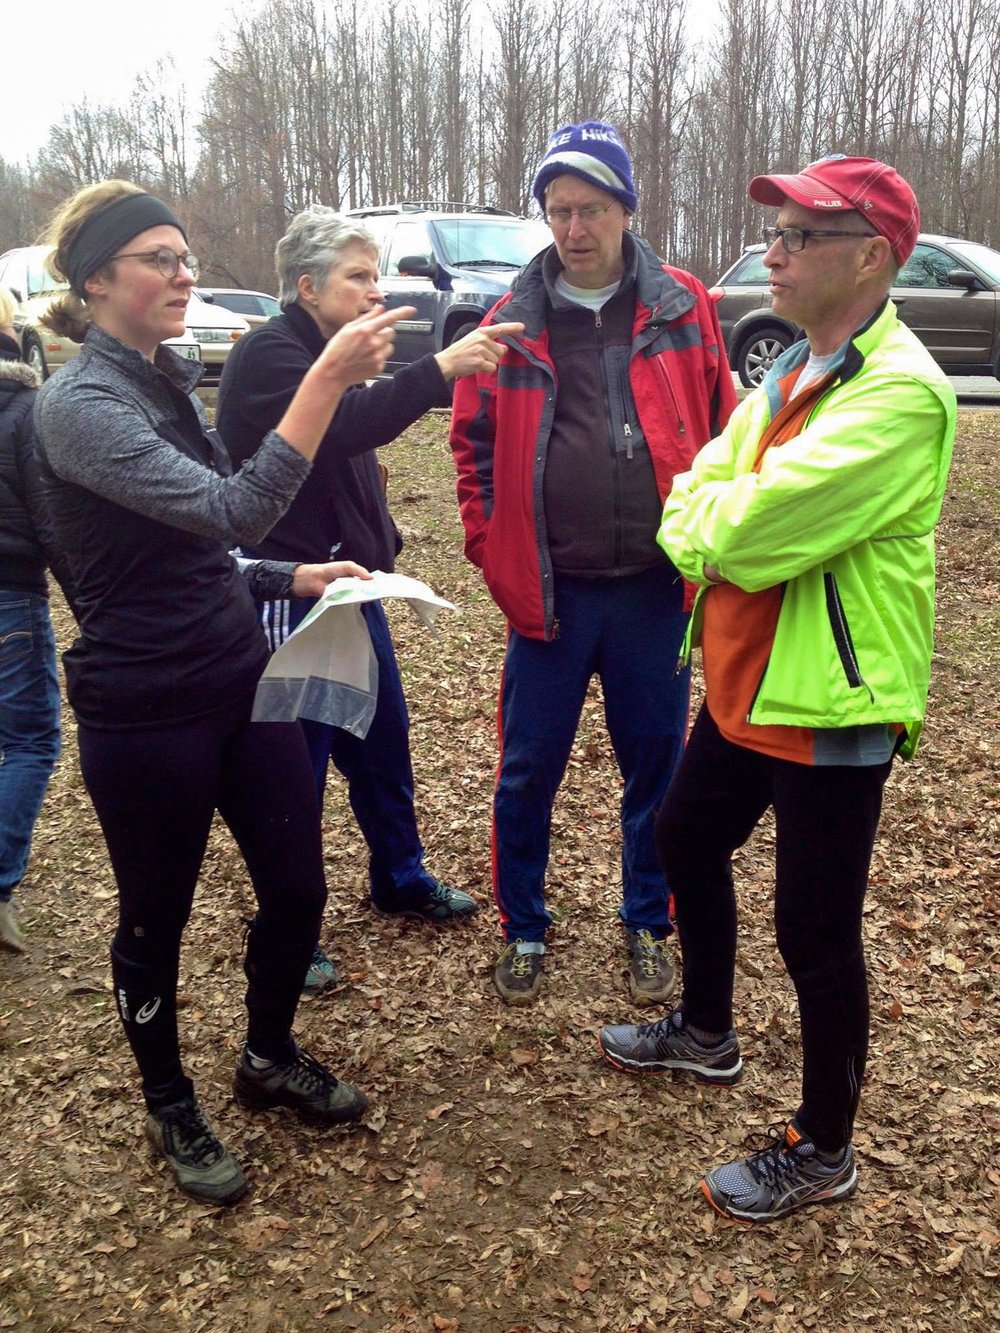 Halimah Marcus discusses an orienteering route (Photo courtesy Halimah Marcus)